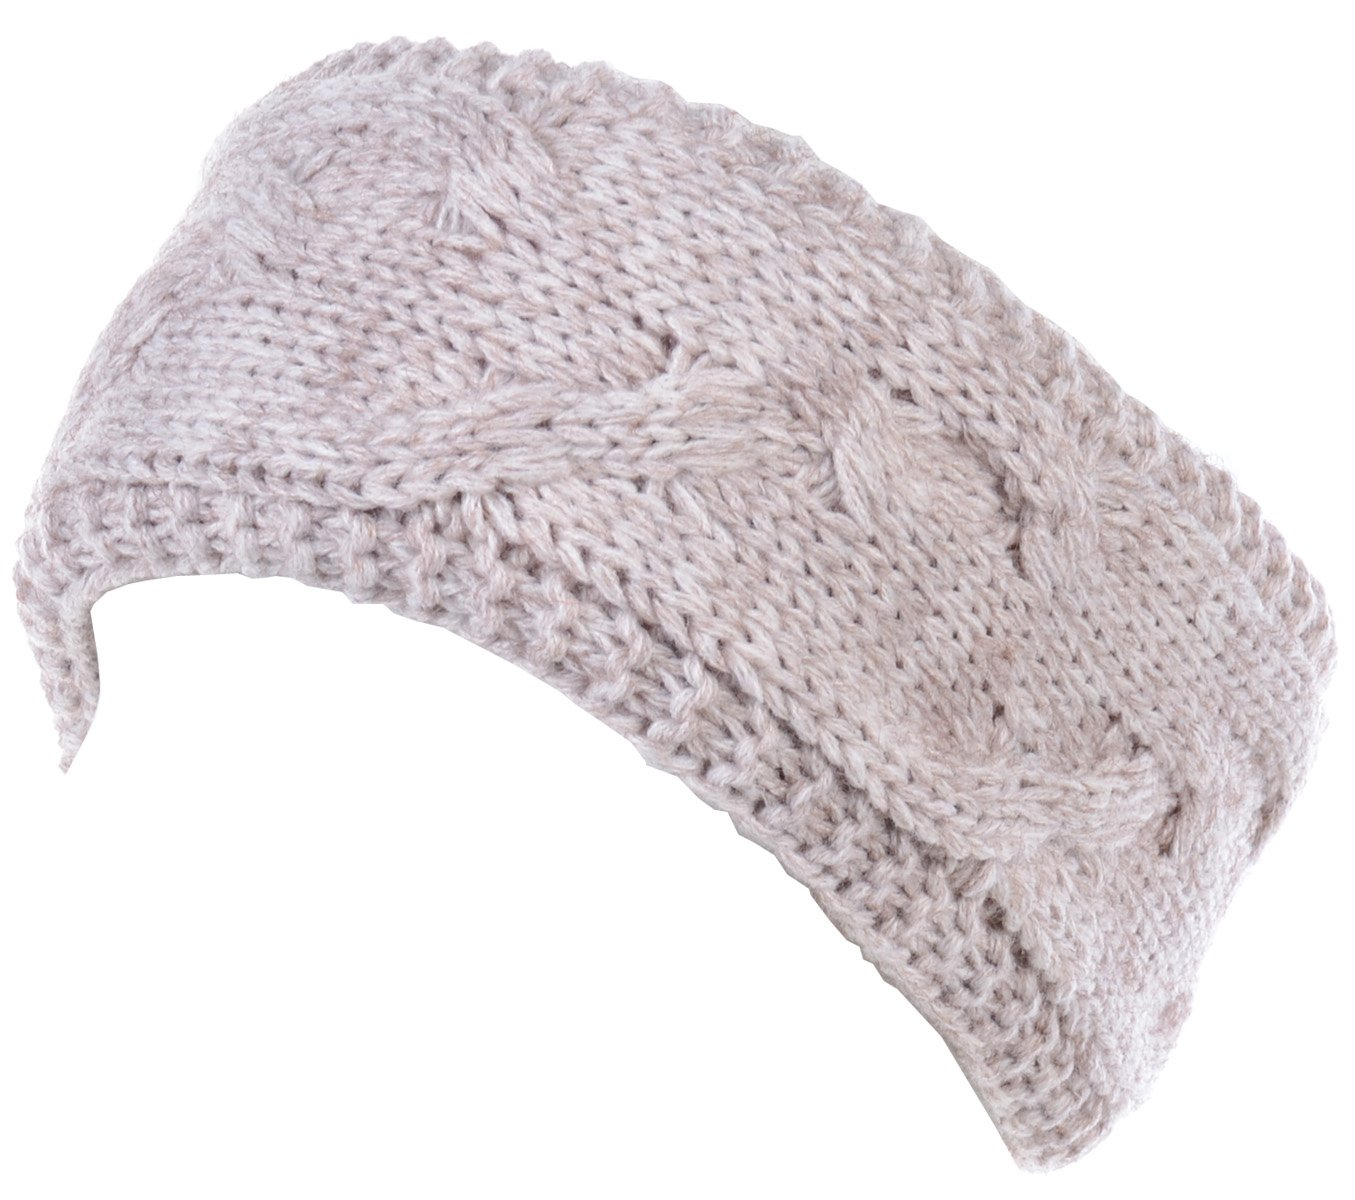 BYOS Winter Cozy Plush Faux Fur Fleece Lined Knitted Headband Wrap Ear Warmer,Various Patterns (Cable Knit Oatmeal)